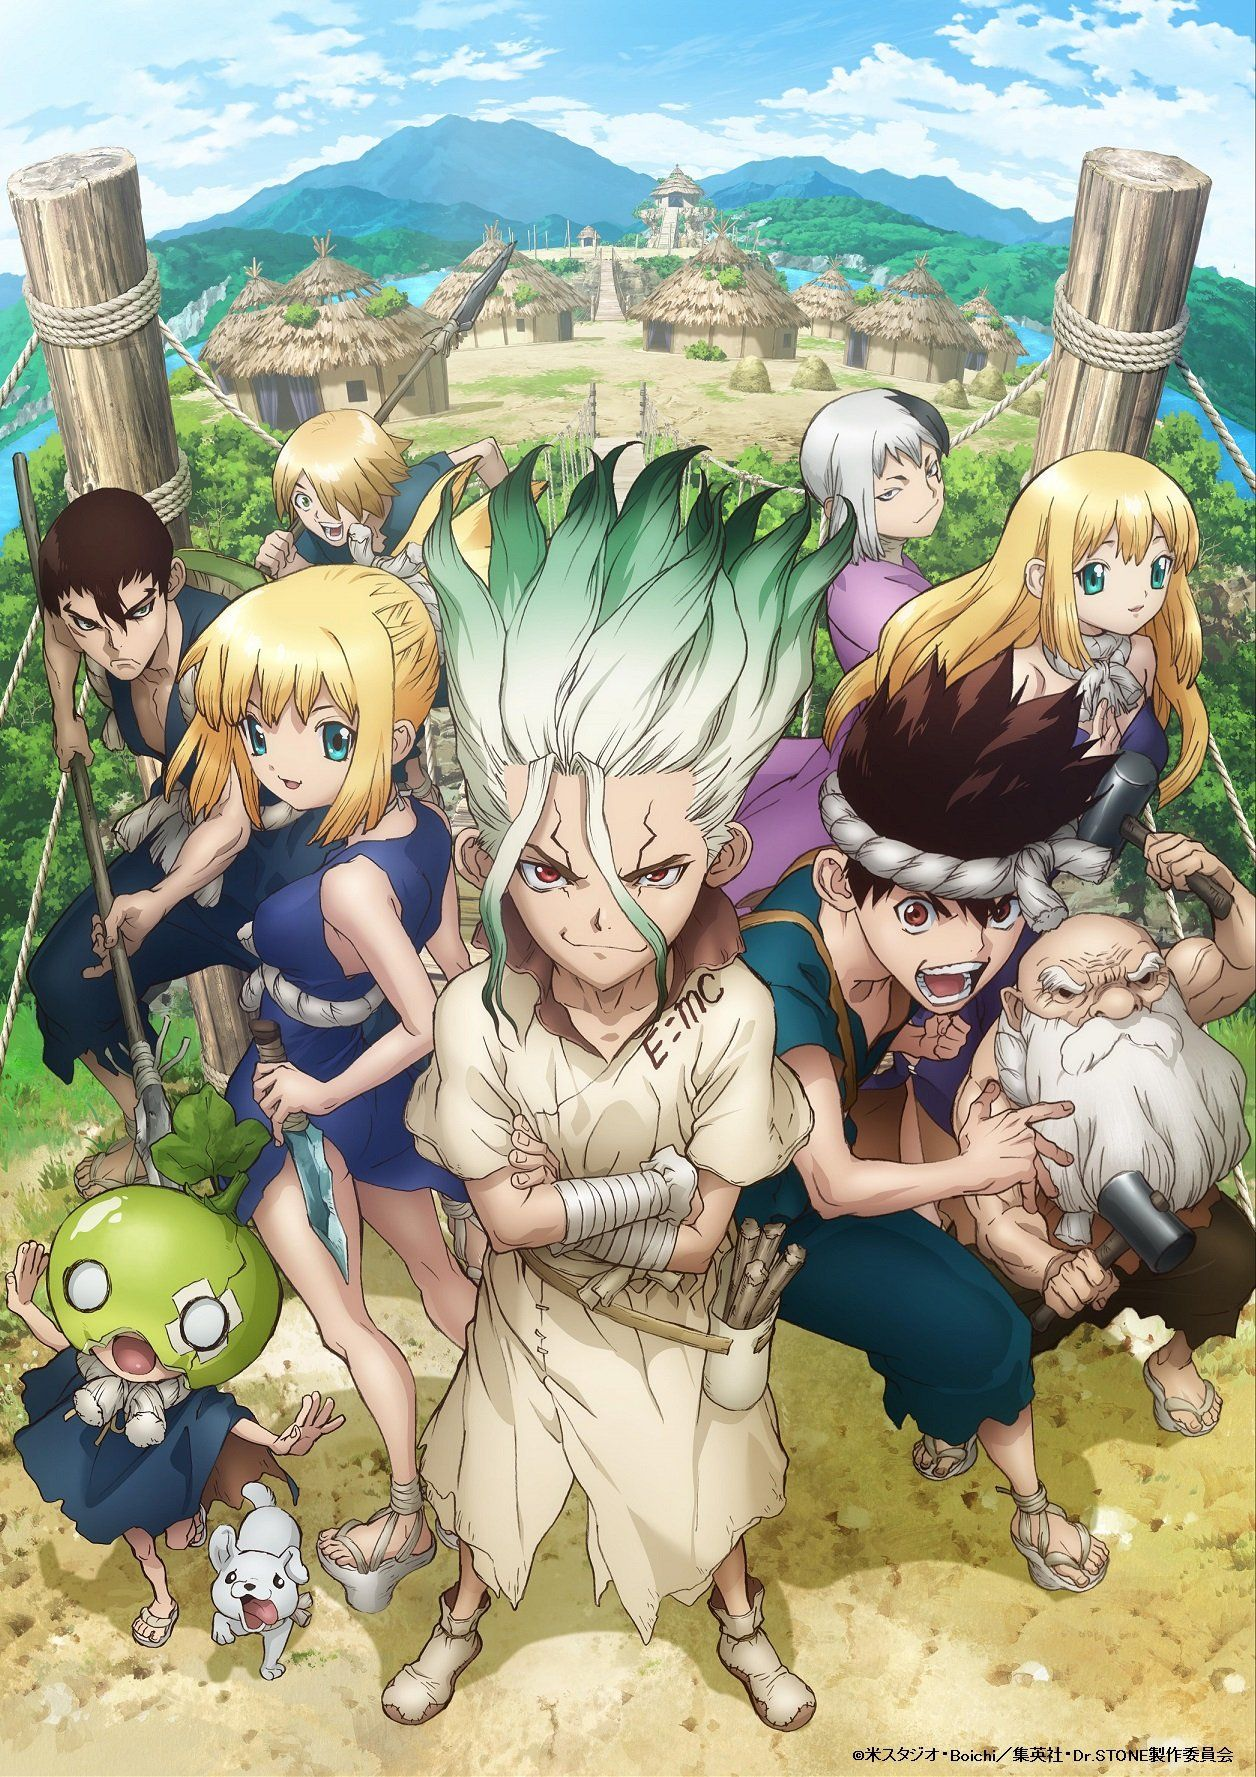 Dr. Stone Wallpapers - Top Free Dr. Stone Backgrounds ...